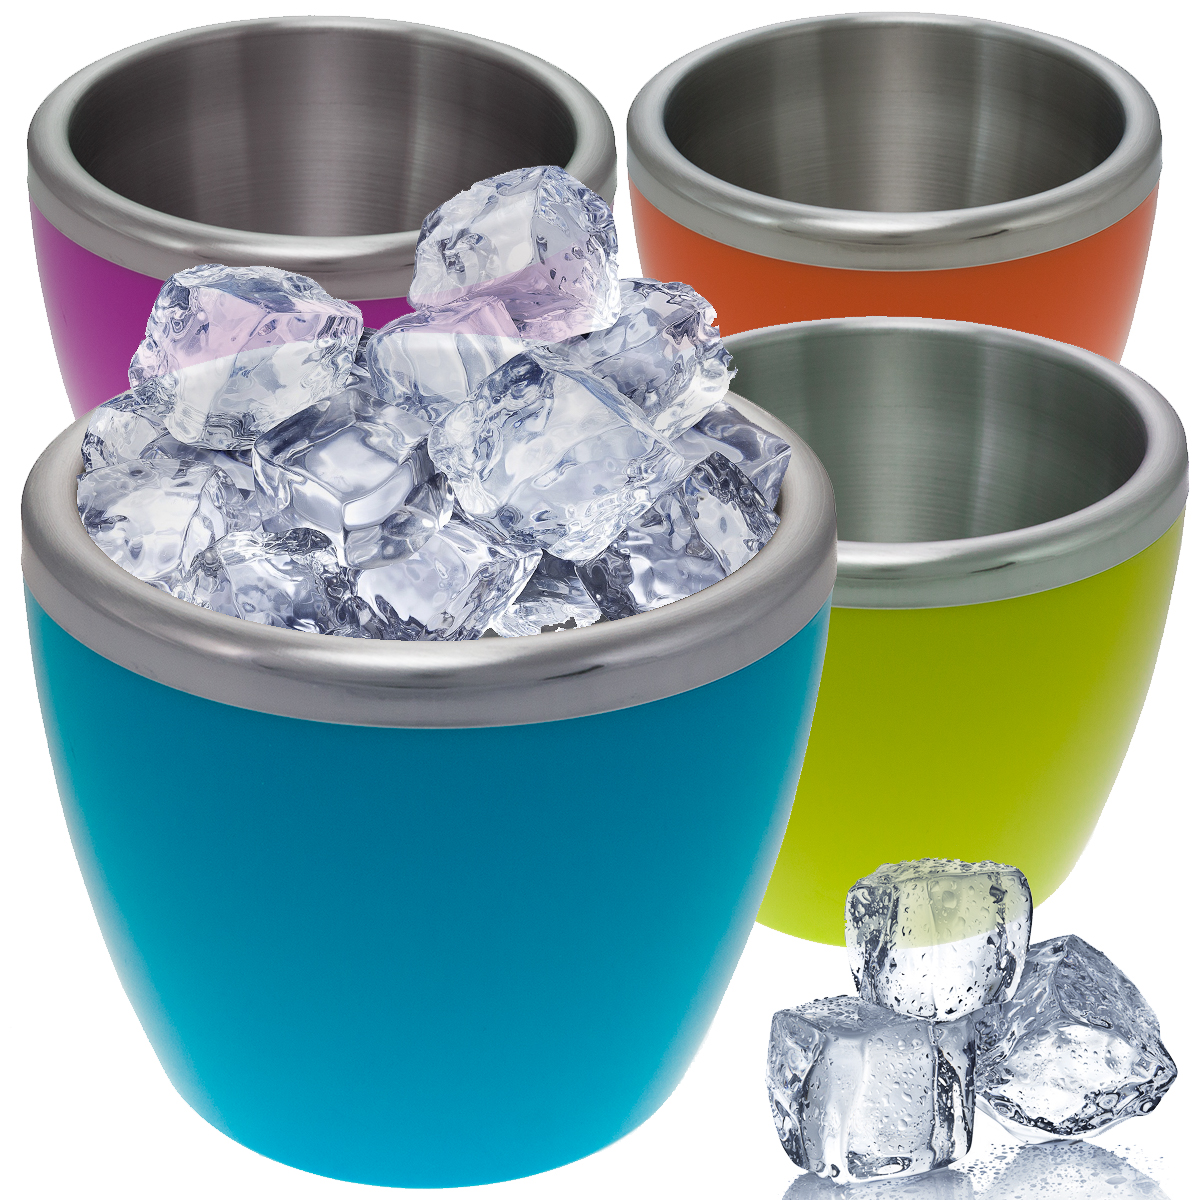 4 Mini Double Wall Stainless Steel Insulated Ice Bucket Pink Green Blue Orange by